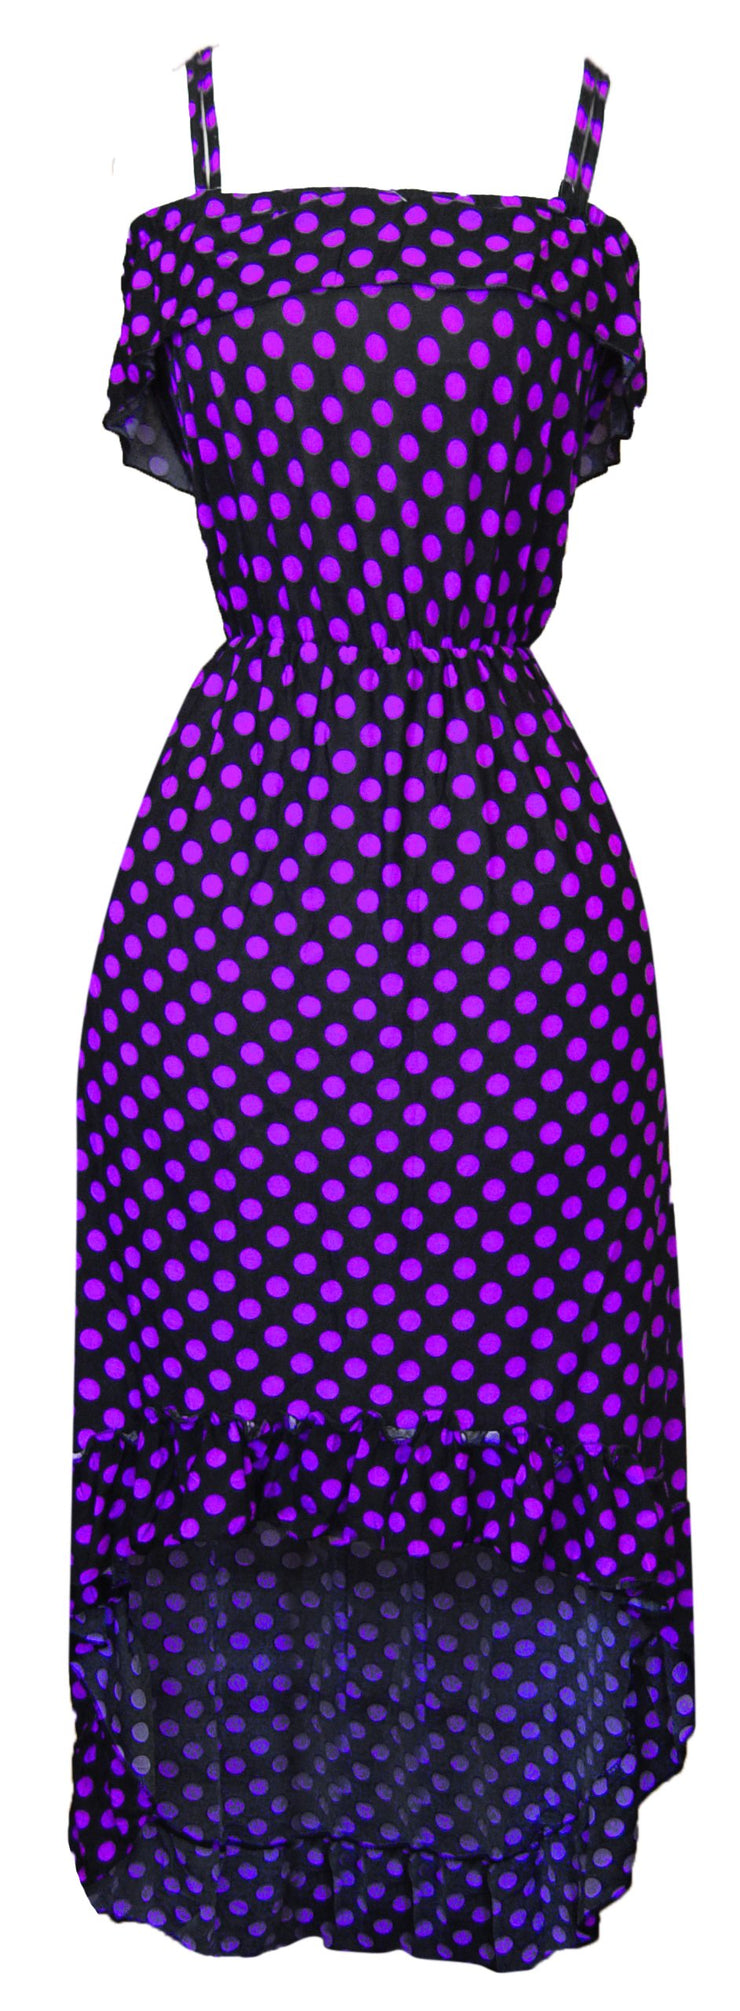 A1270-PolkaDot-Maxi-Dress-Blk-Purp-L-SM